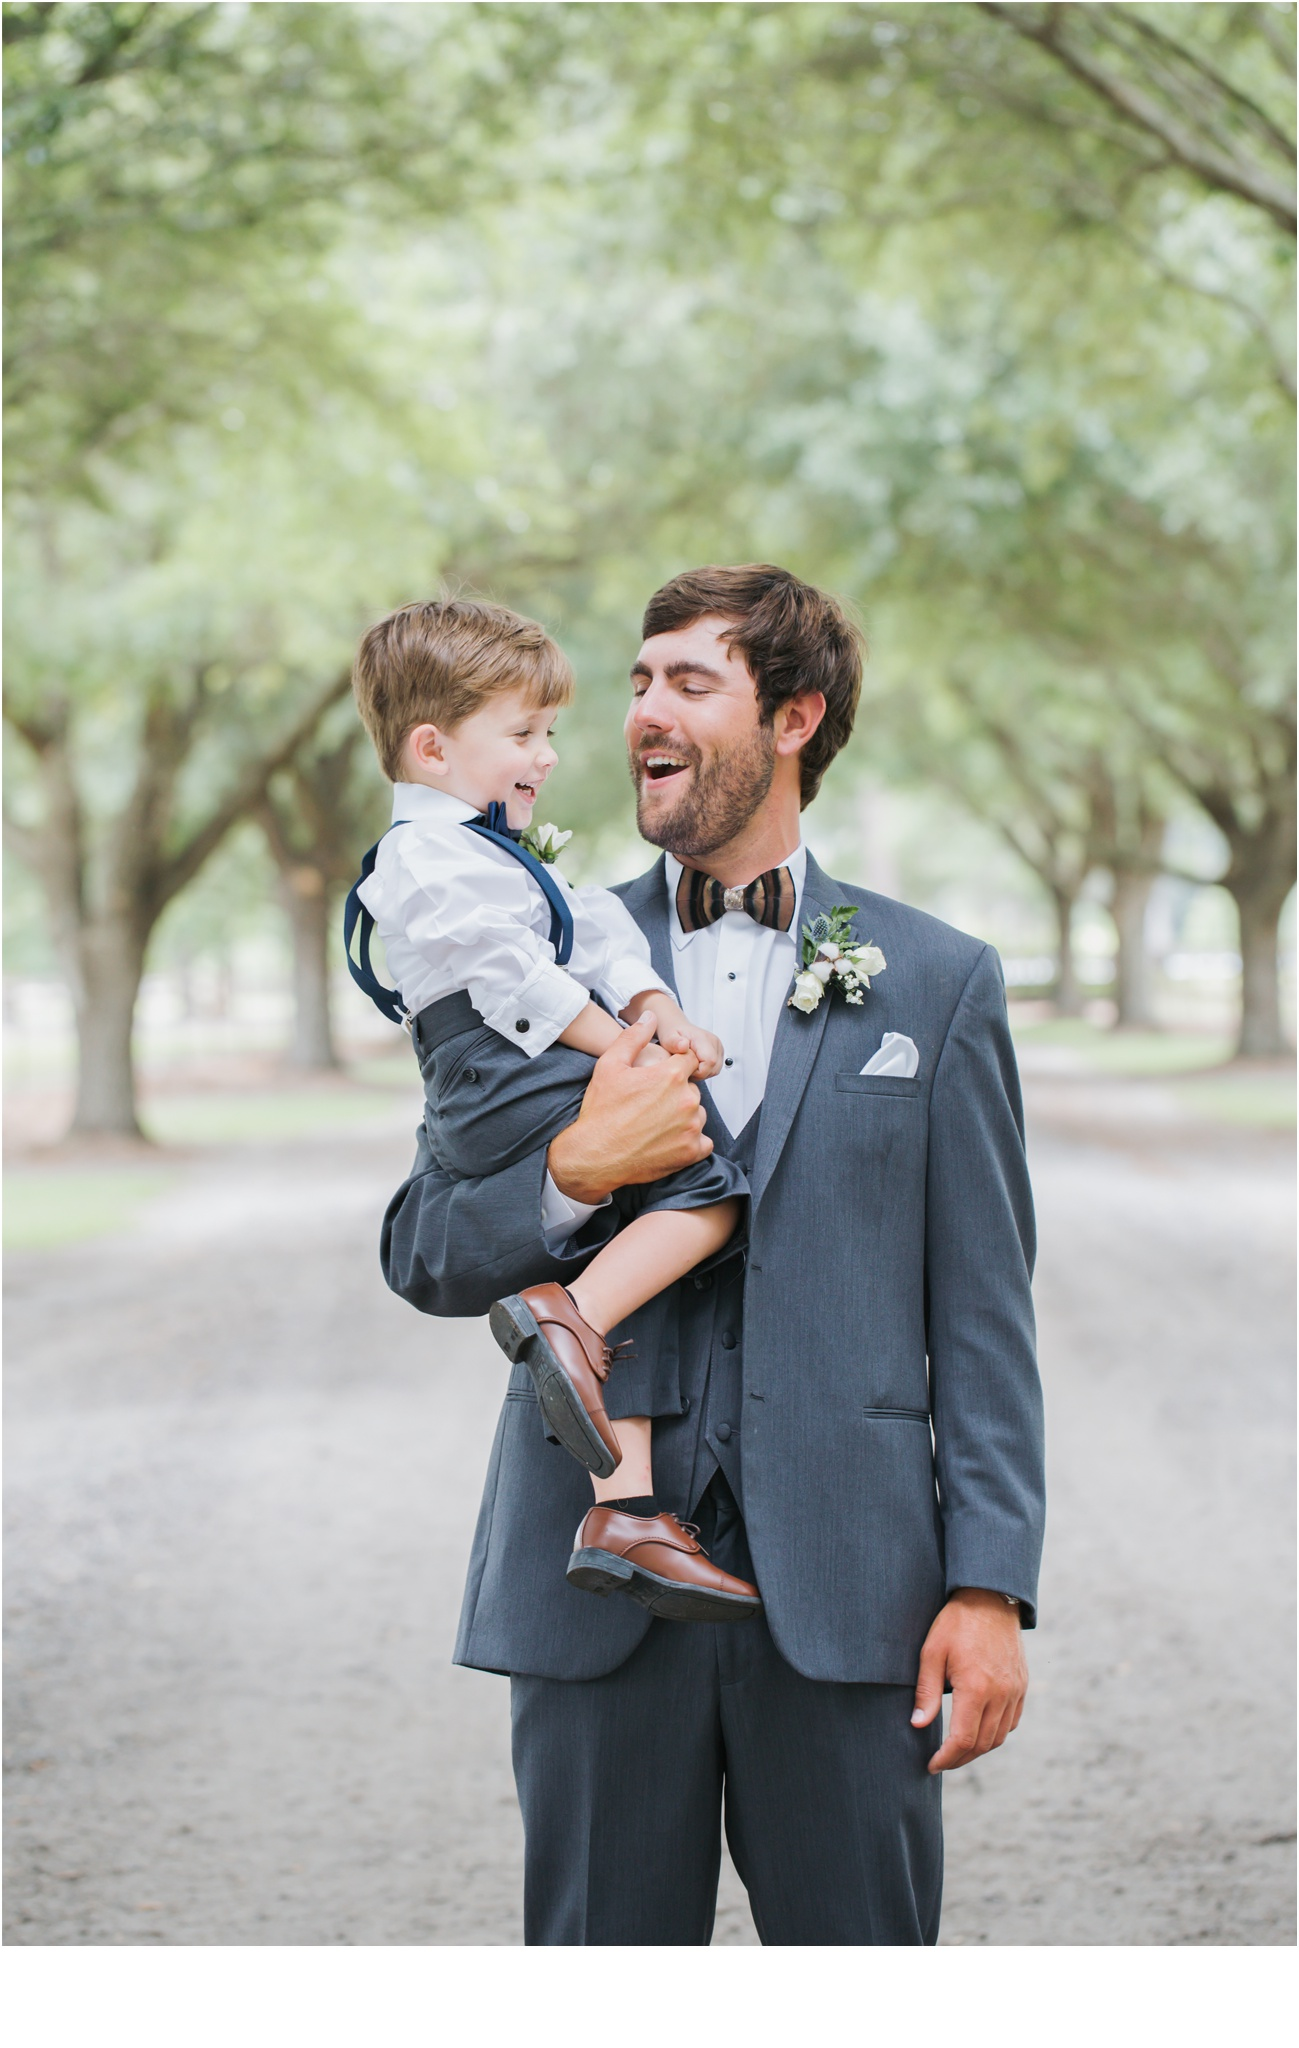 Rainey_Gregg_Photography_St._Simons_Island_Georgia_California_Wedding_Portrait_Photography_0904.jpg